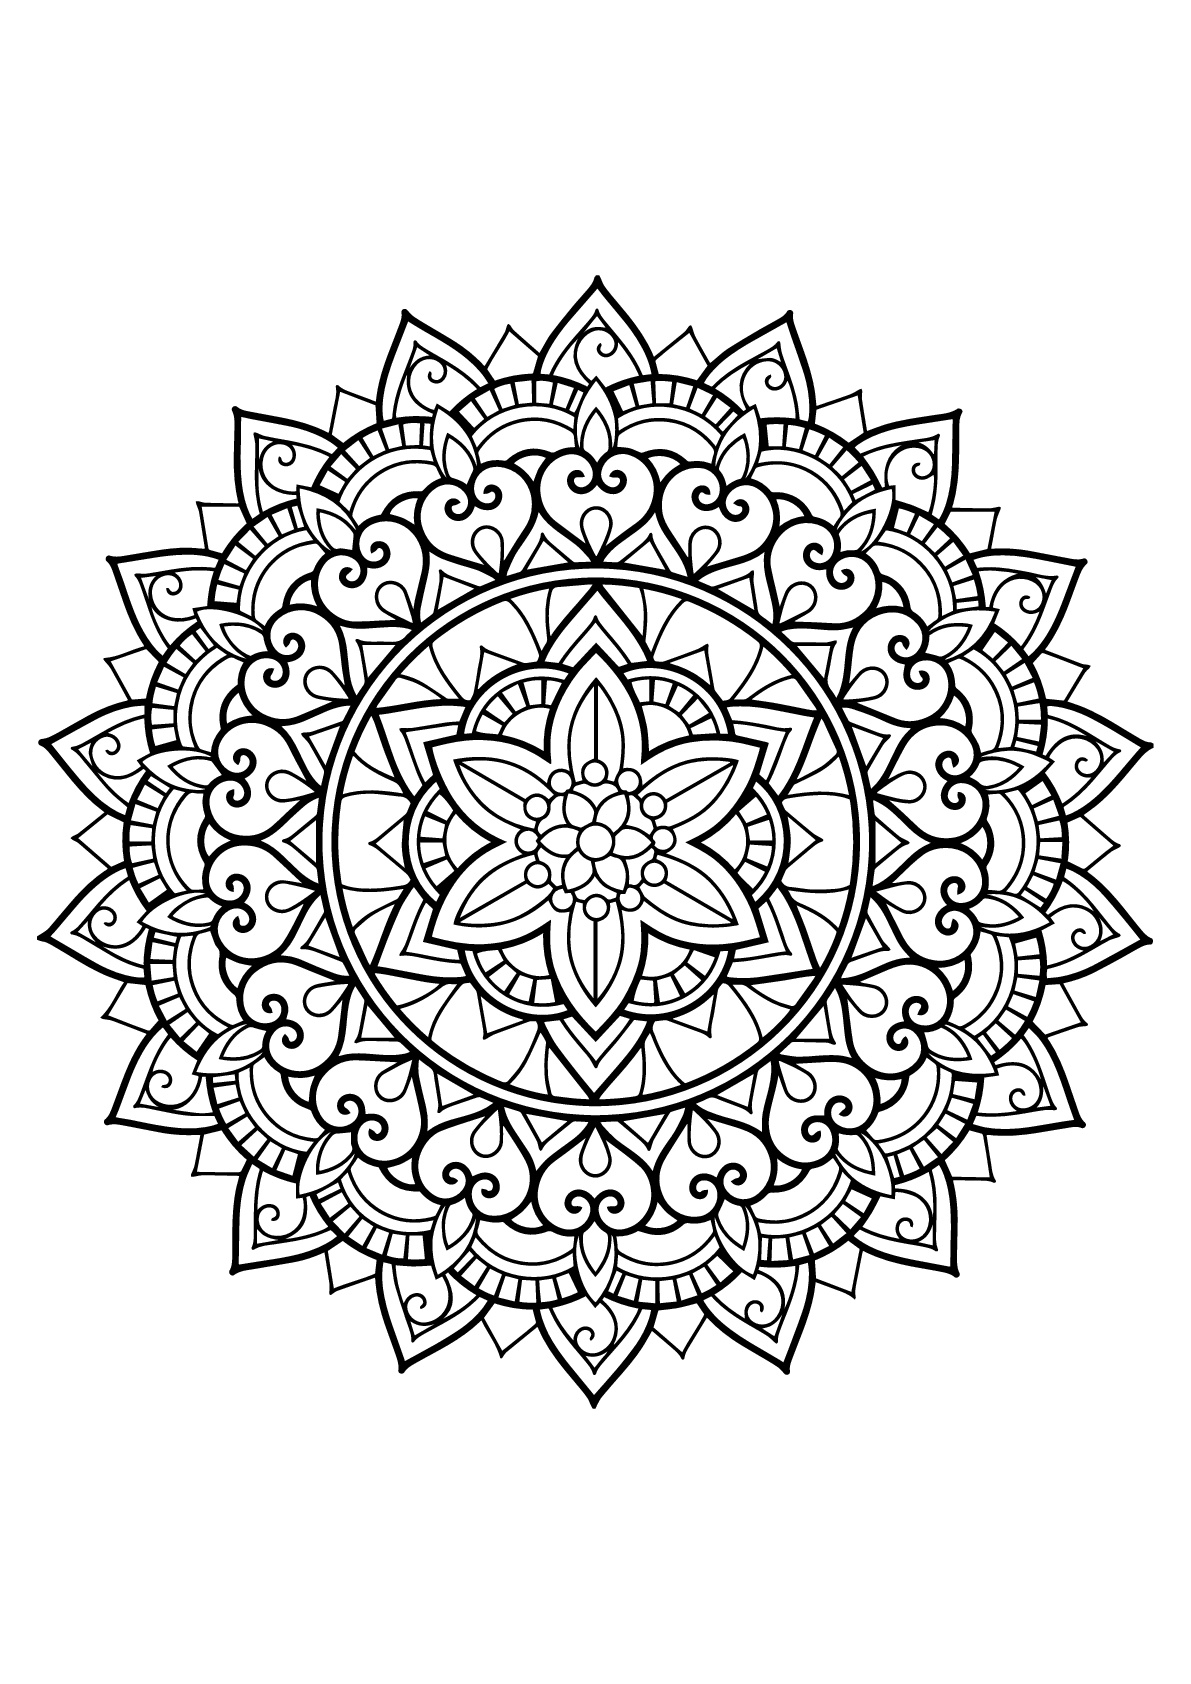 livre de coloriage mandala imprimer et obtenir une coloriage gratuit ici. Black Bedroom Furniture Sets. Home Design Ideas